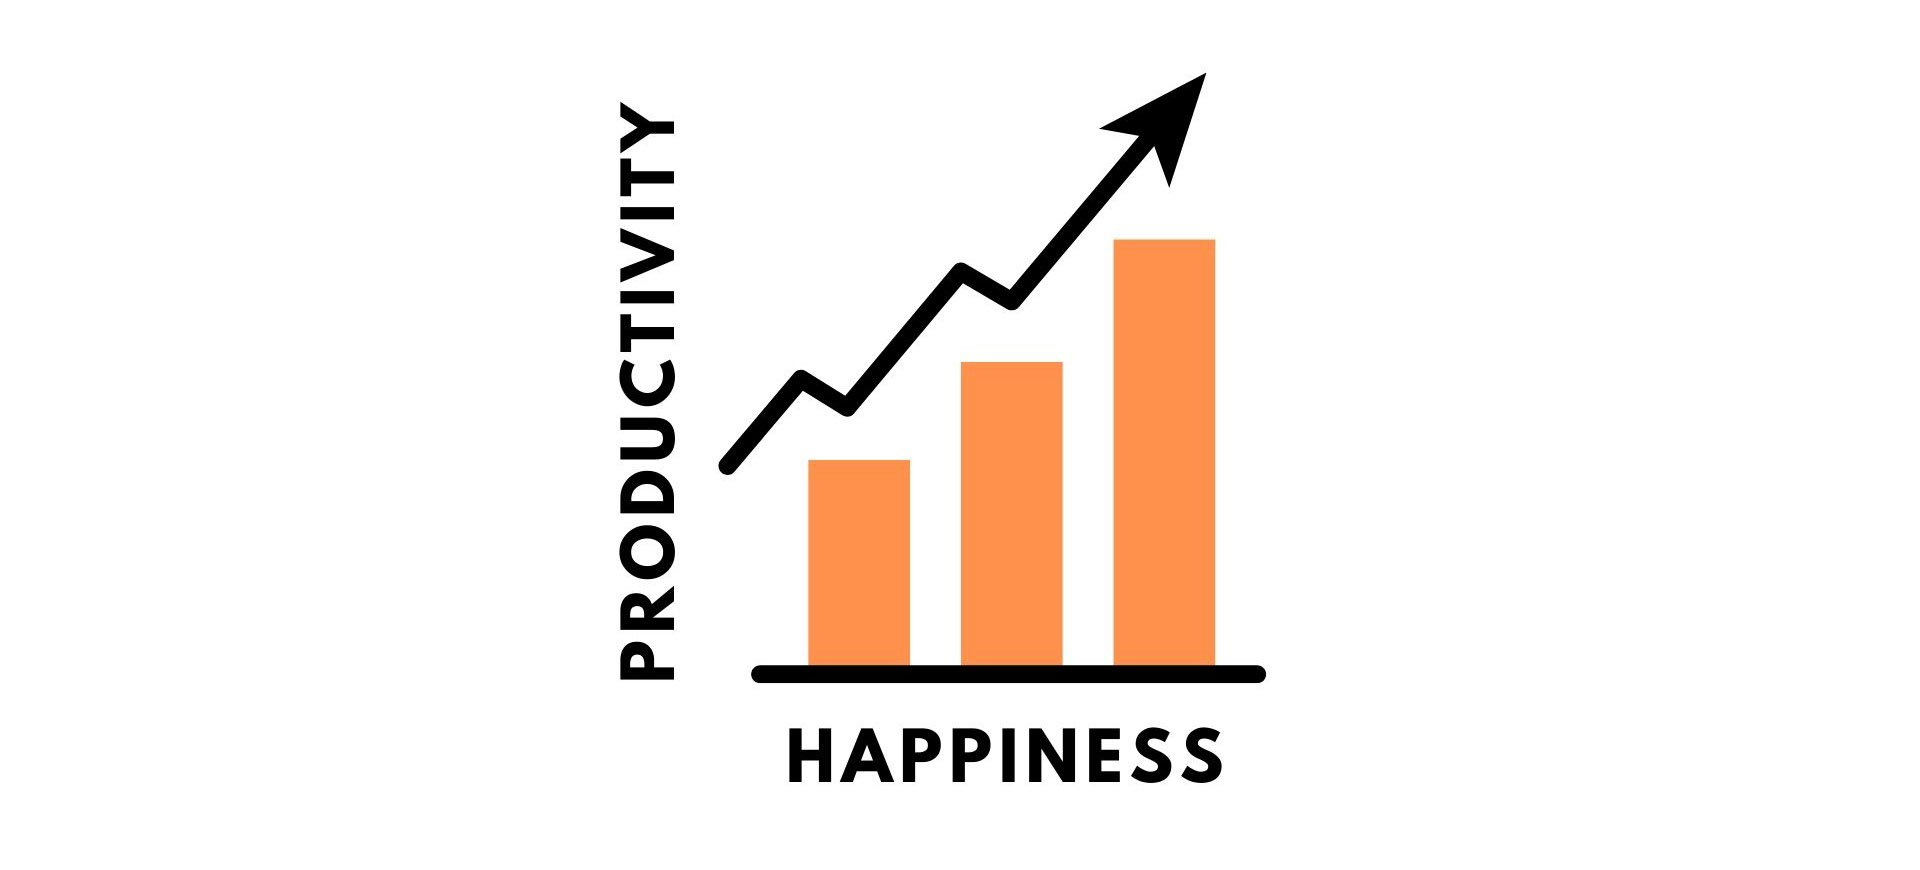 Productivity and happiness